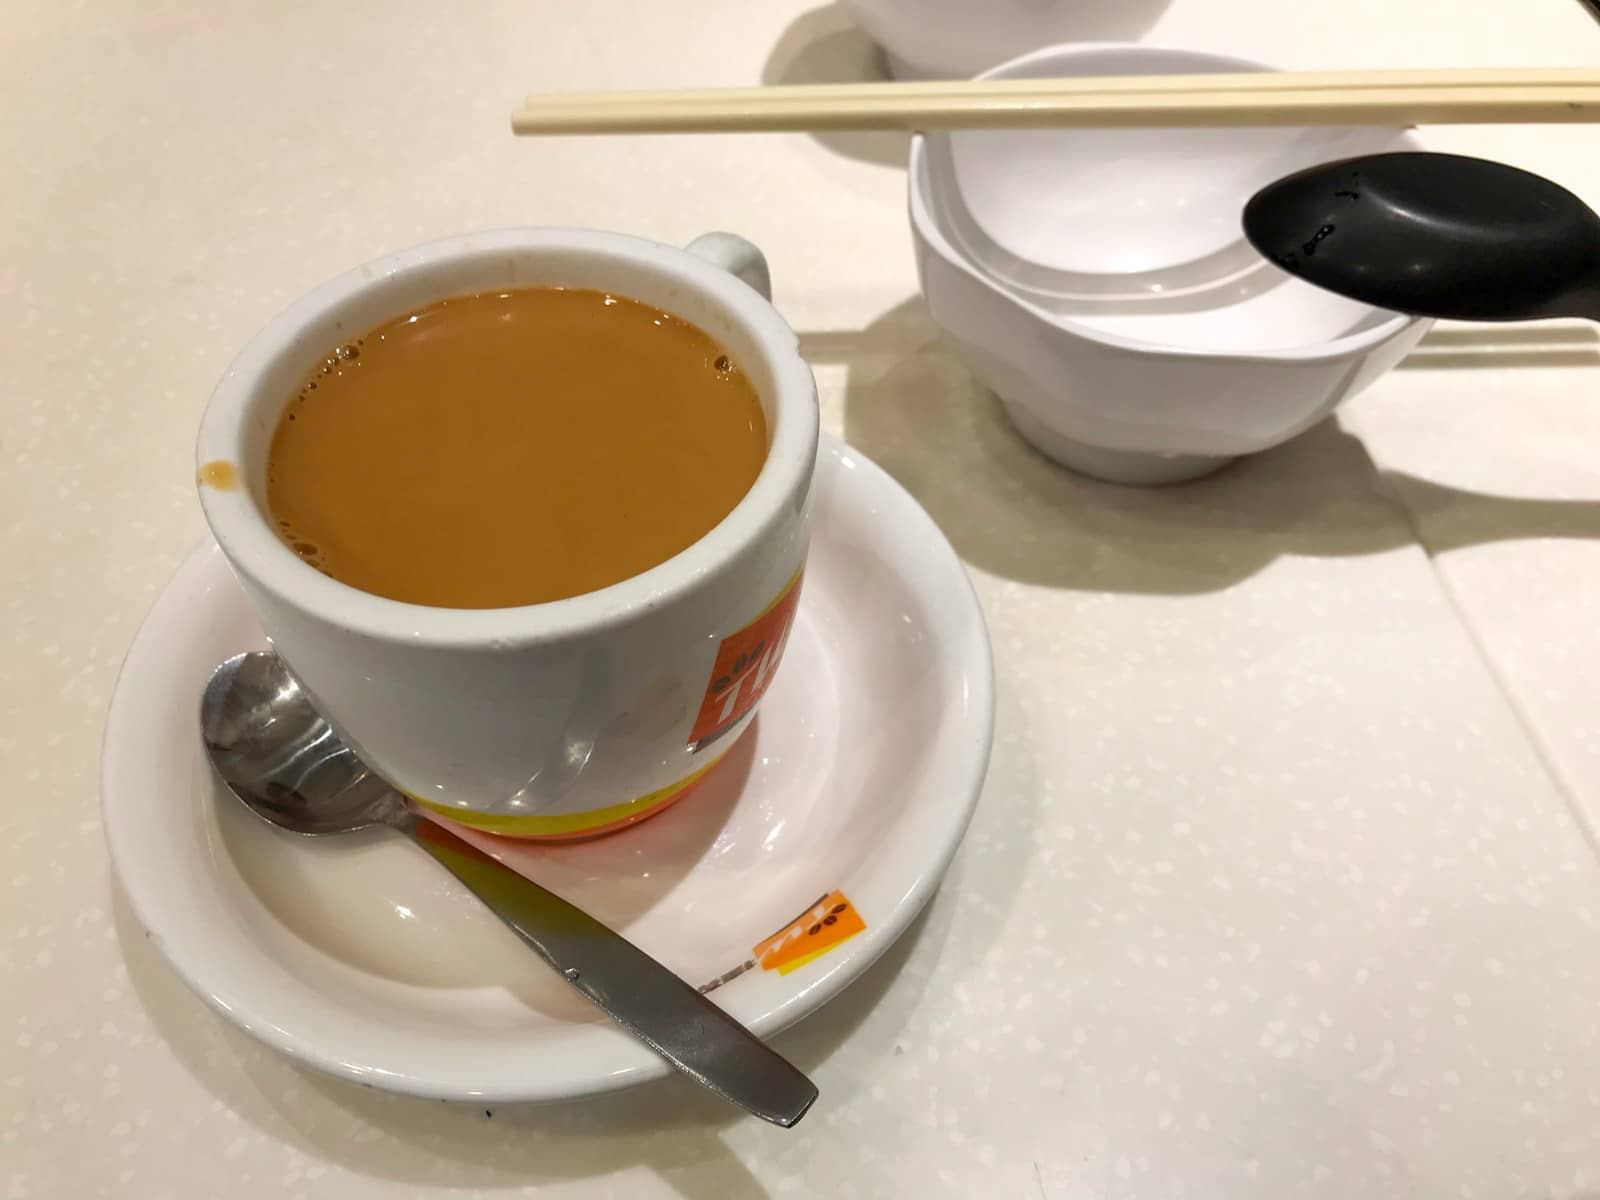 A small white cup of Hong Kong style milk tea, served on a small saucer